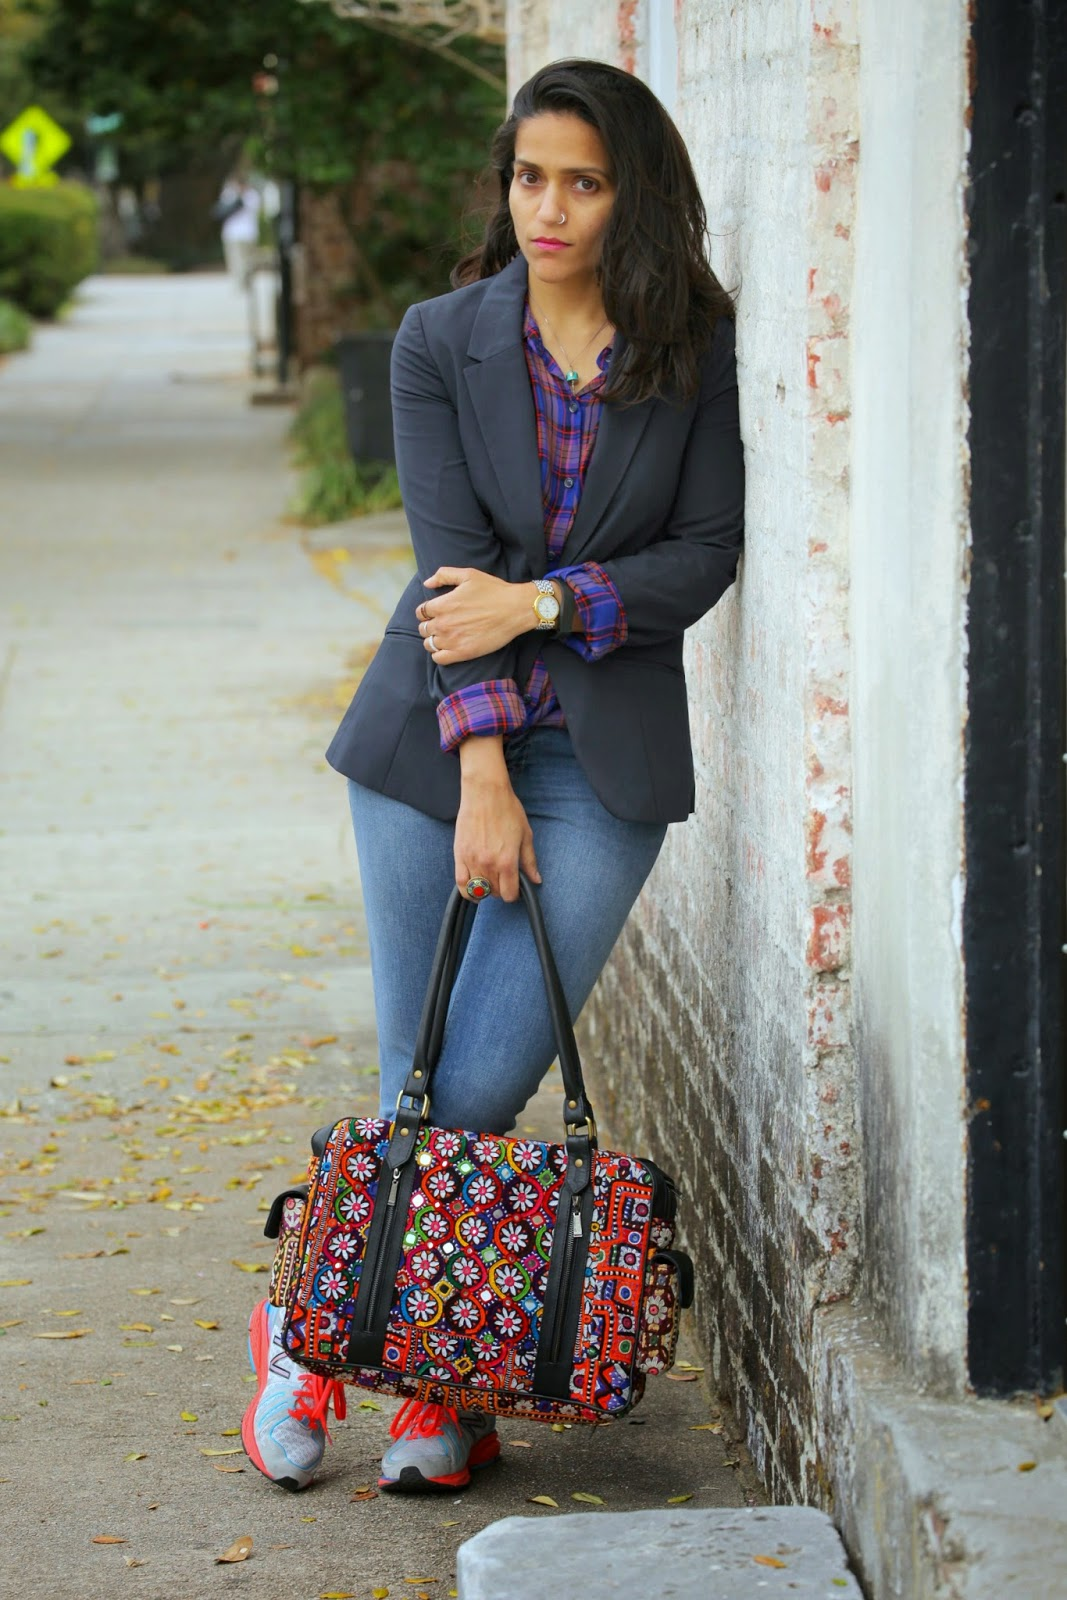 Blazer - ASOS Shirt - Joie Clothing Jeans - Zara  Bag - Crazy & Co.  Shoes - New Balance Tanvii.com